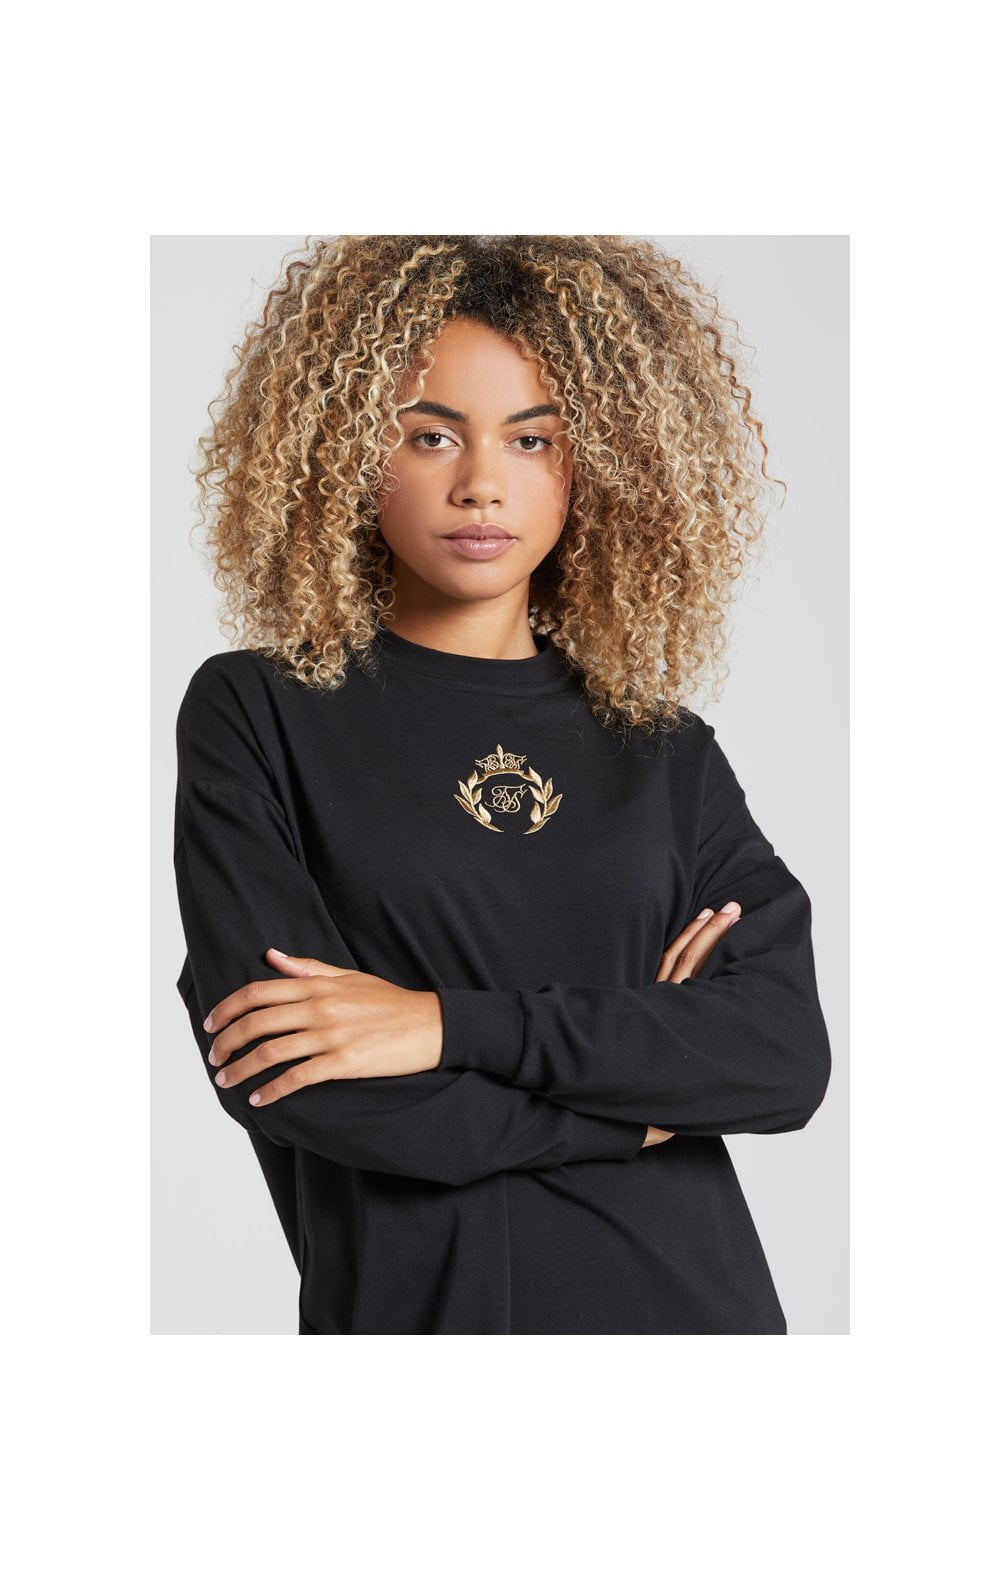 SikSilk Prestige Tshirt Dress - Black (1)